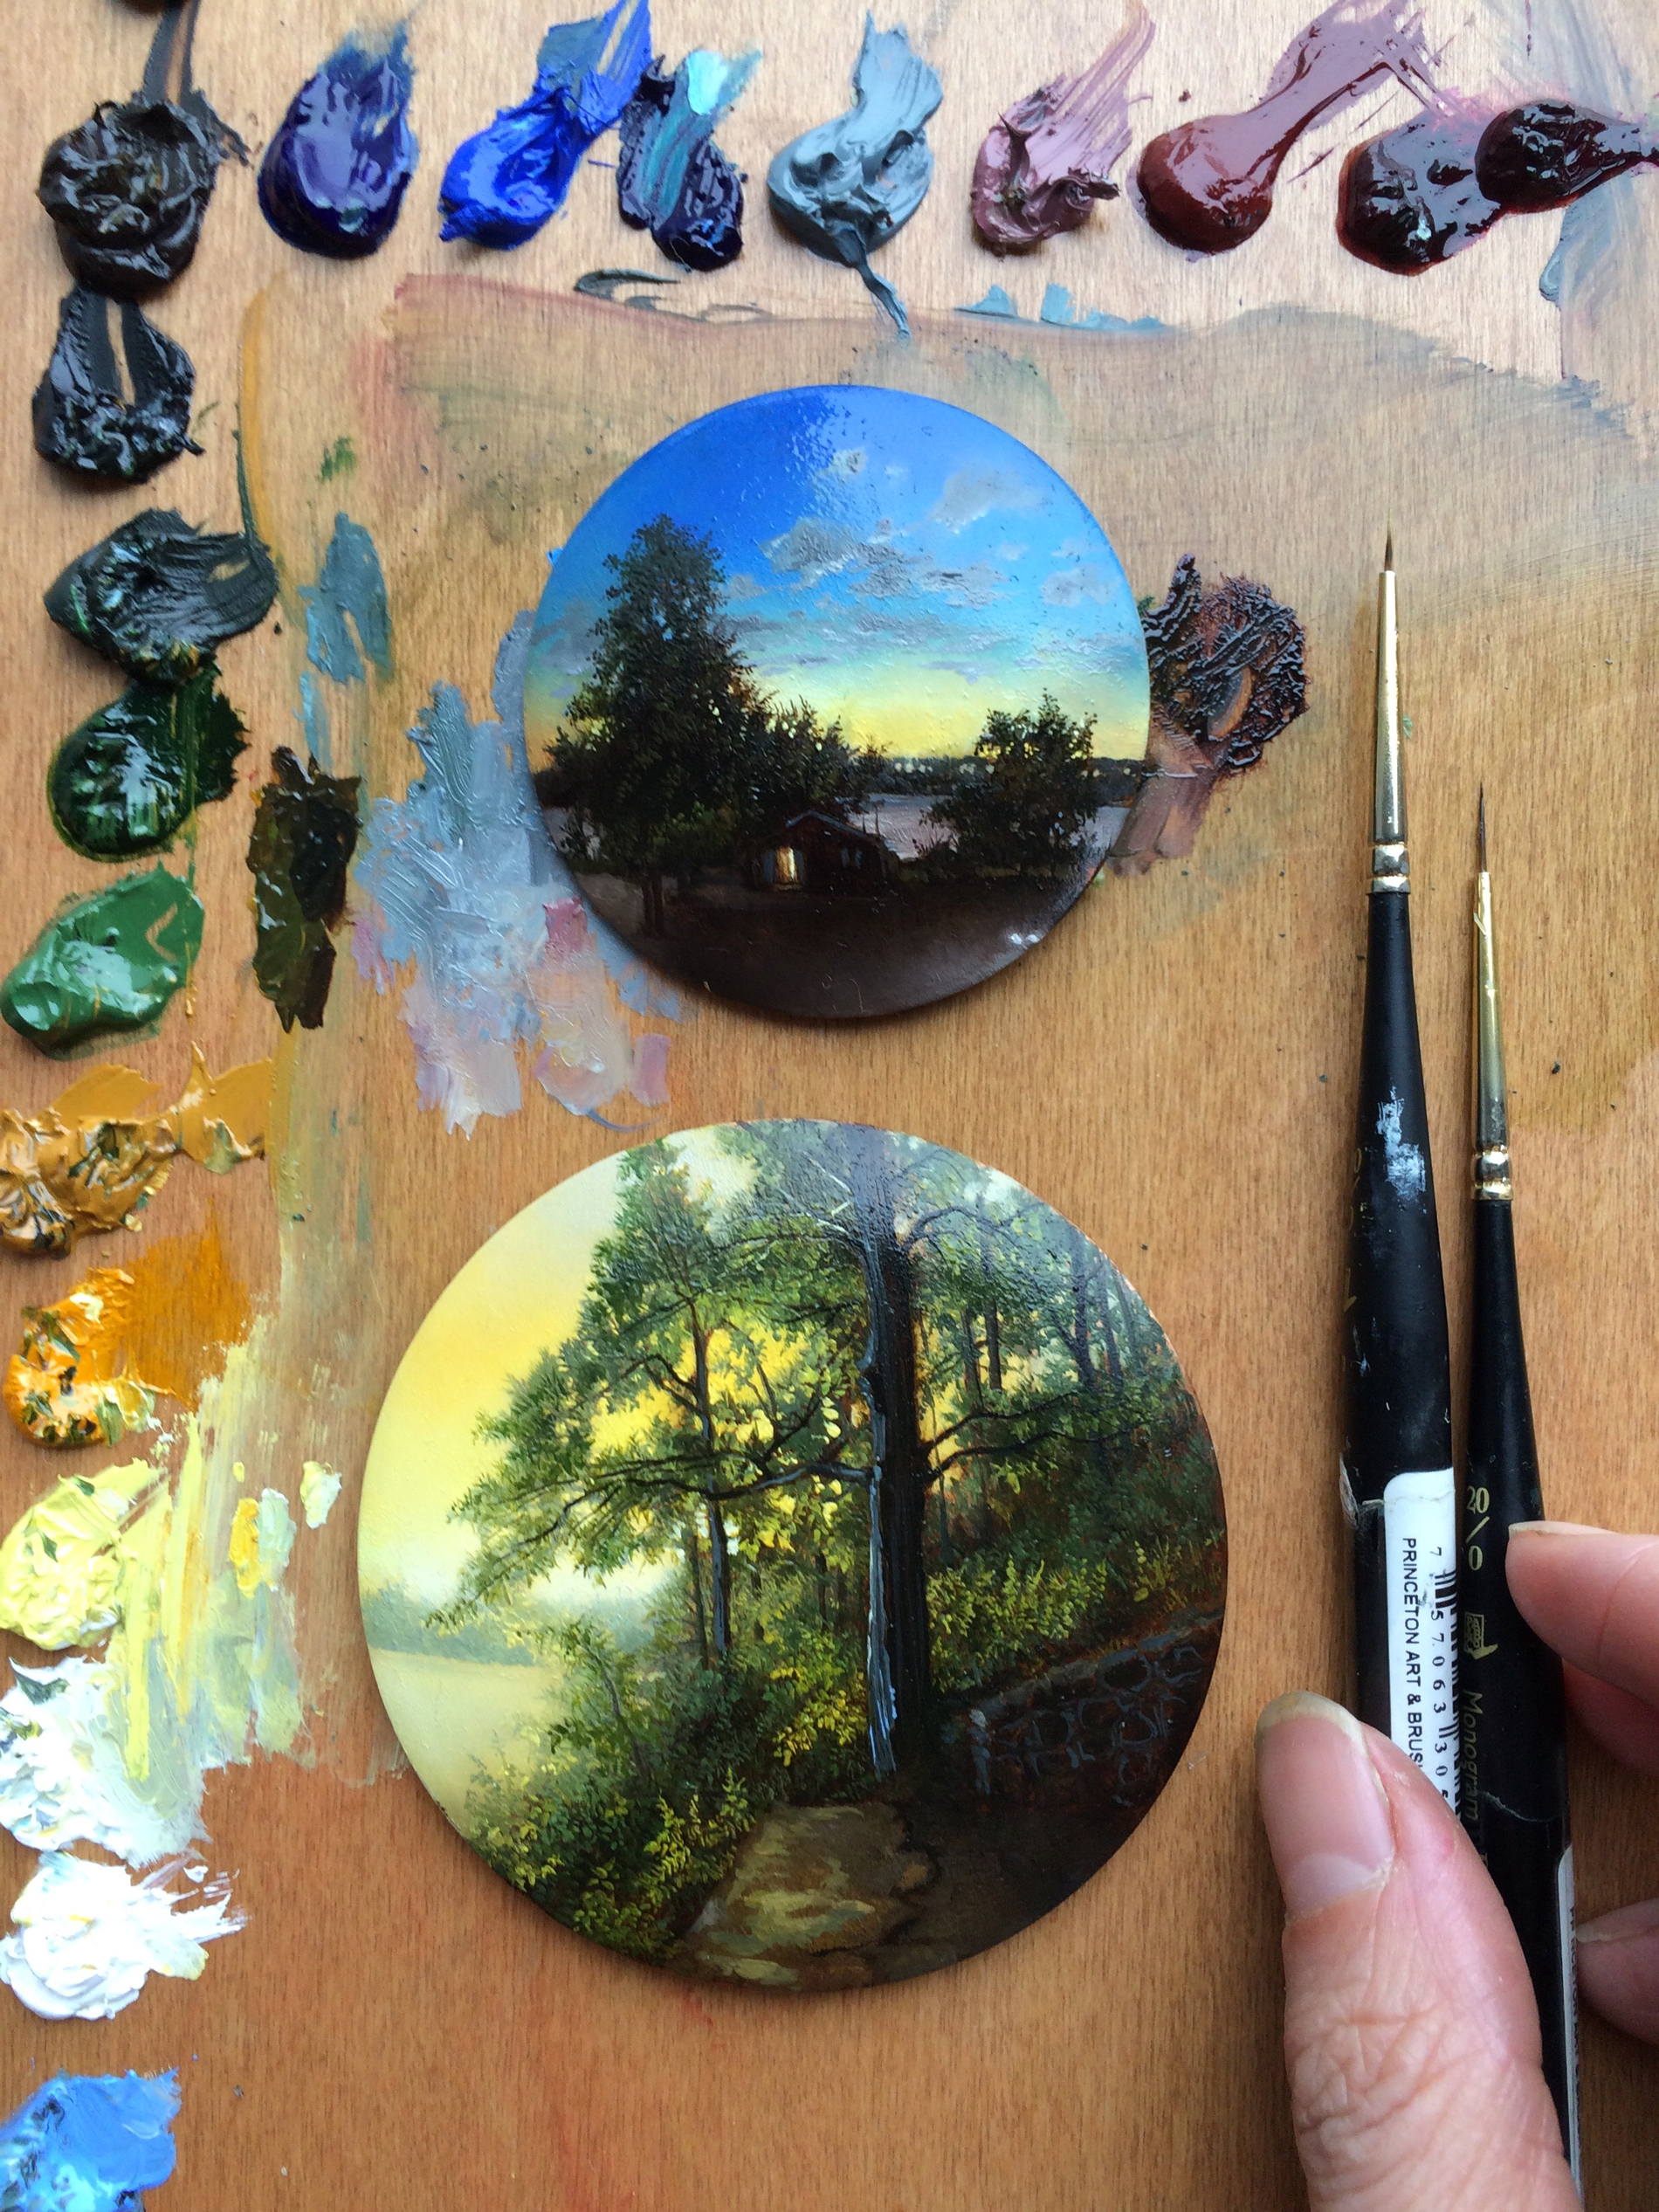 Painting S Dina Brodsky Chronicles Her Travels In Detailed Miniature